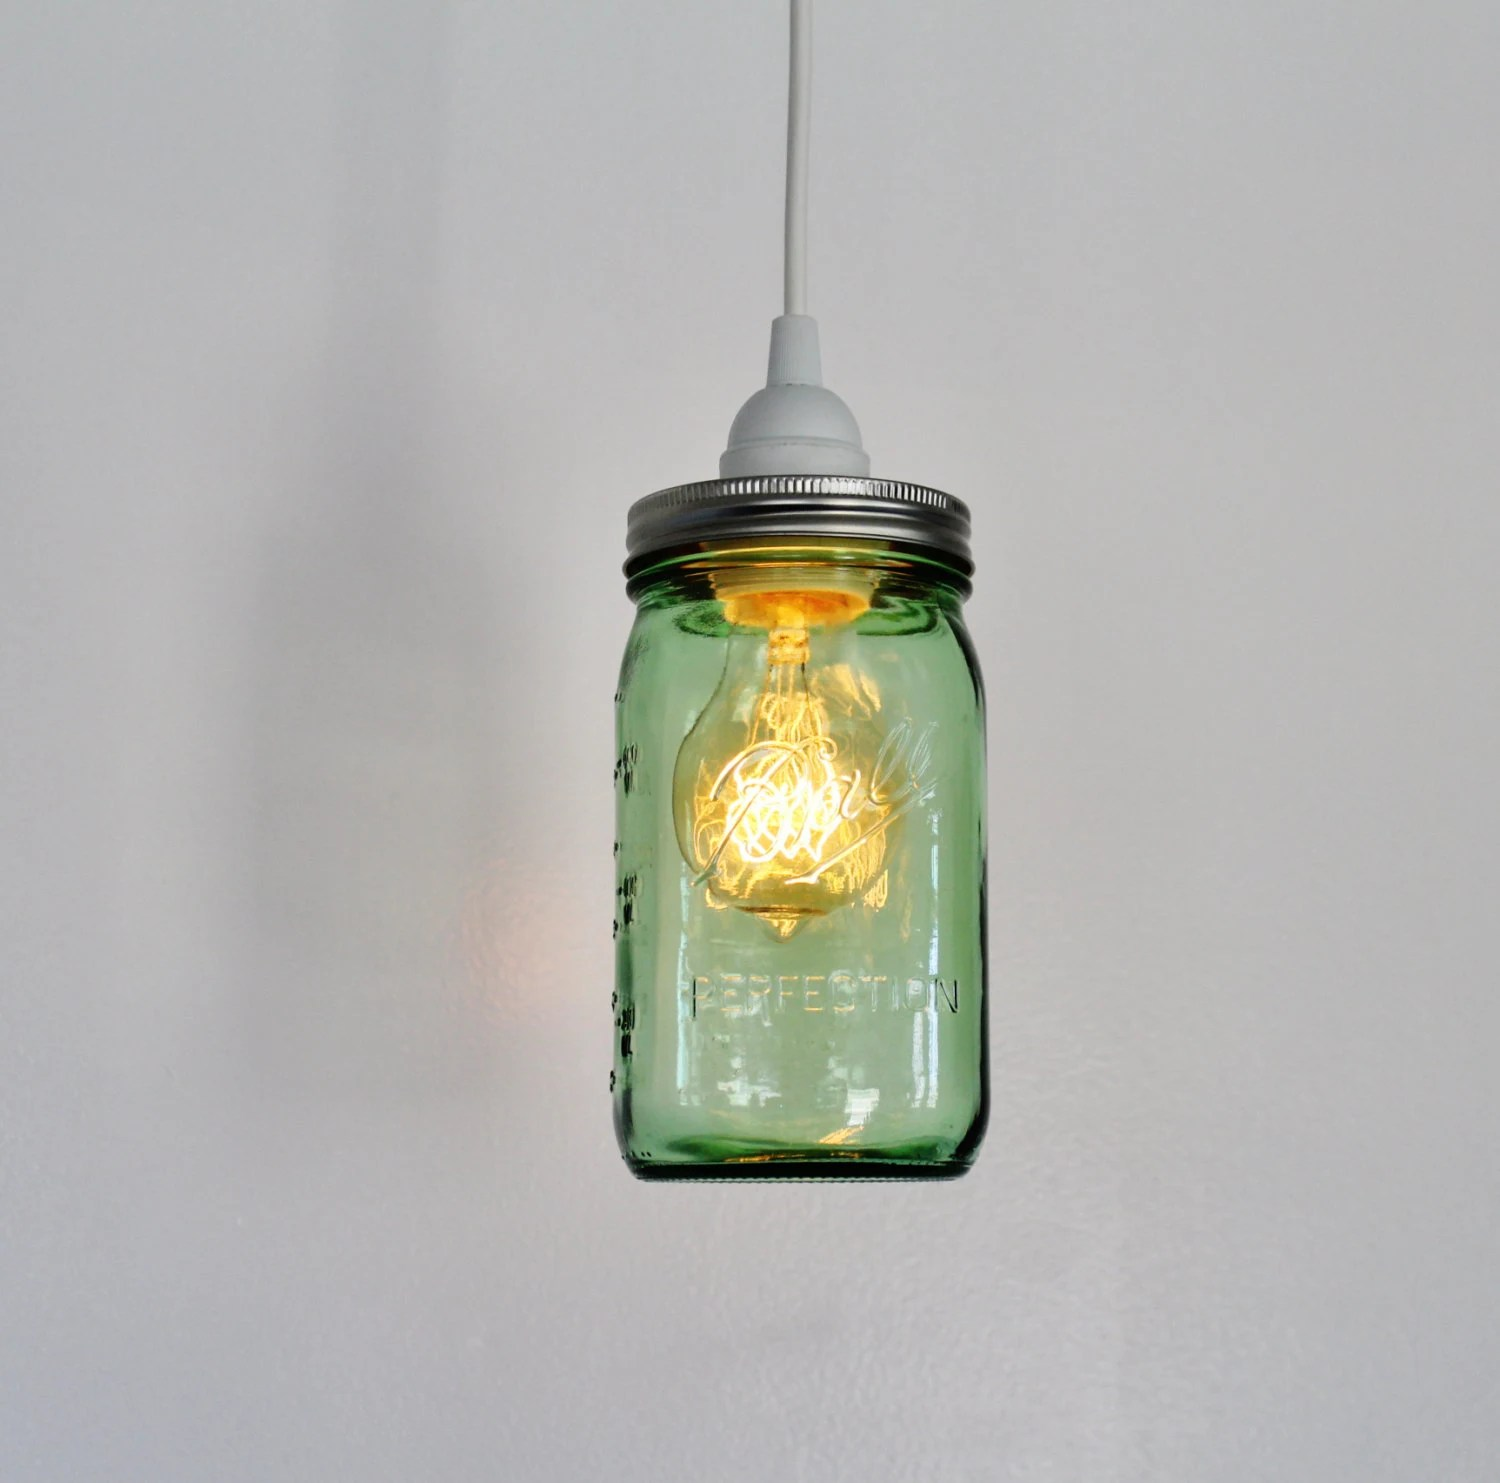 Luminaire France Lampe à Suspension Mason Jar Upcycled Suspension Luminaire